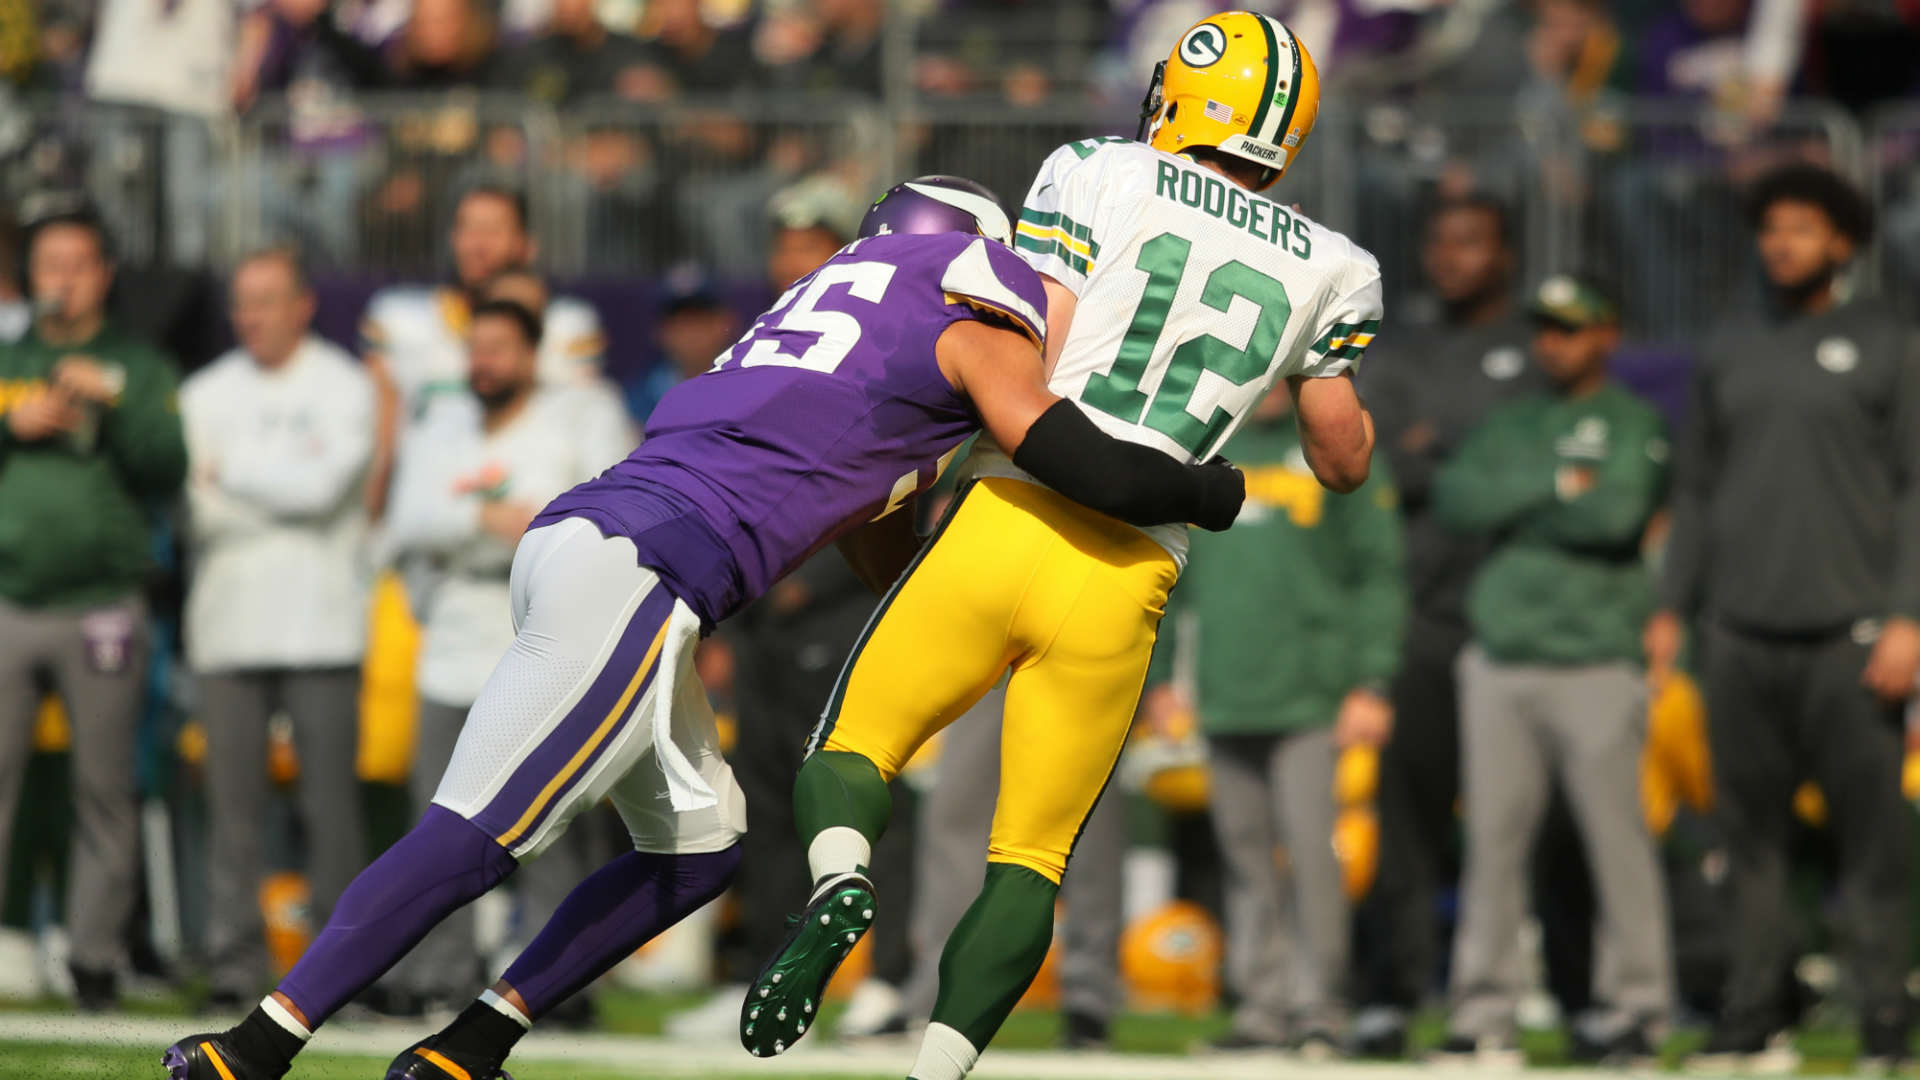 Anthony Barr Aaron Rodgers got y all fooled man